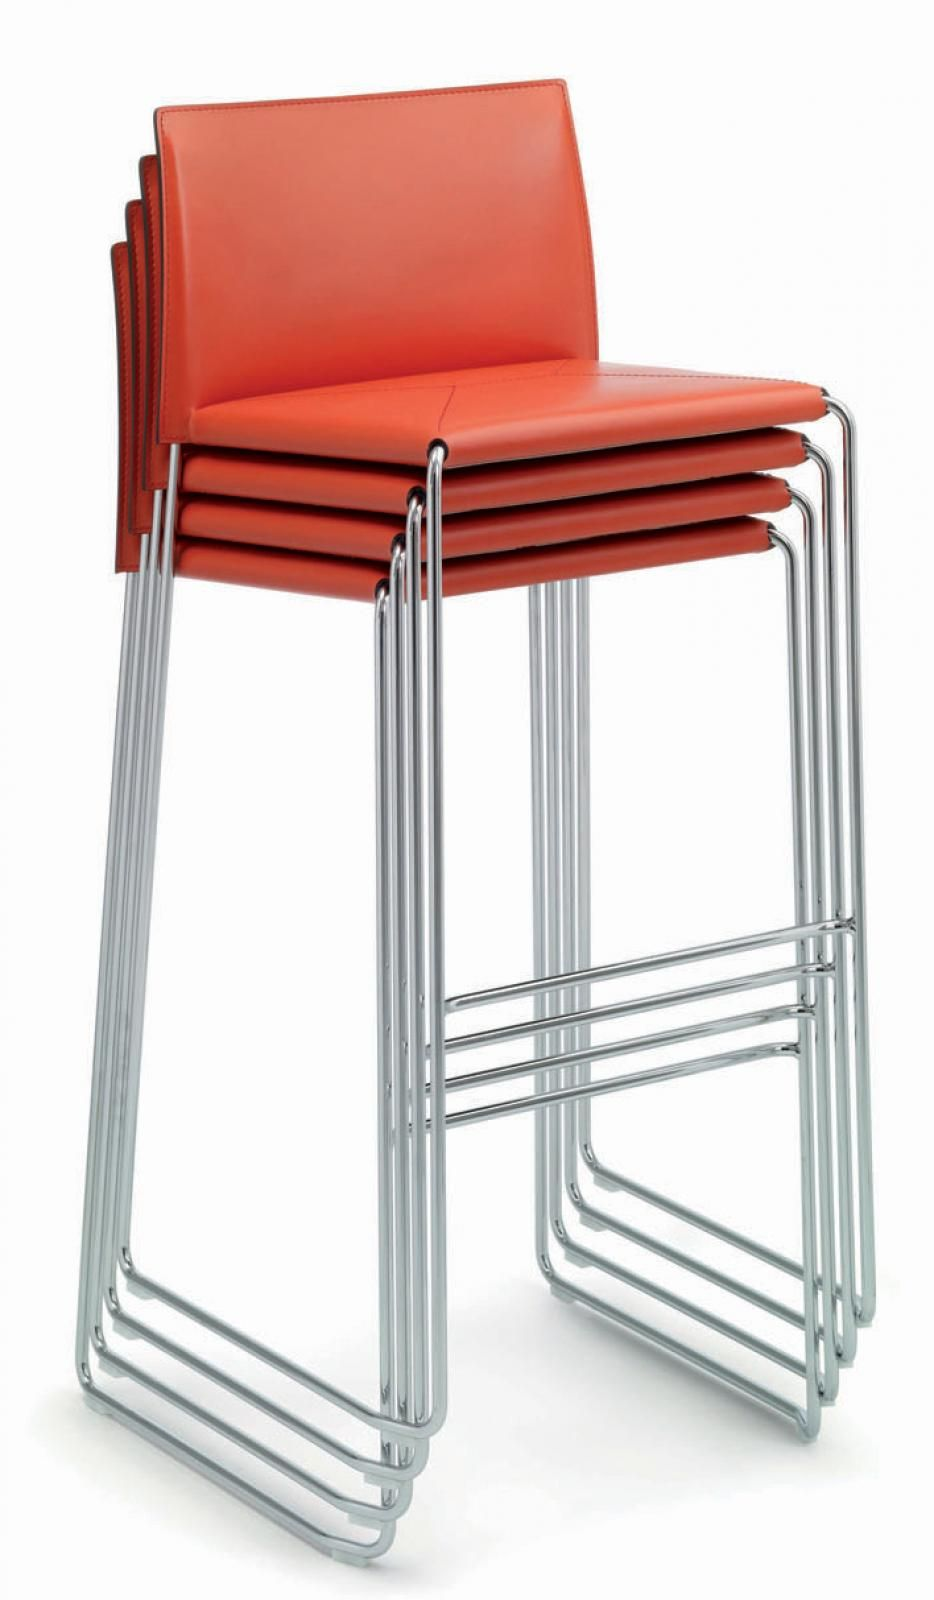 This Bar Stool Is Available In Counter And Bar Version And